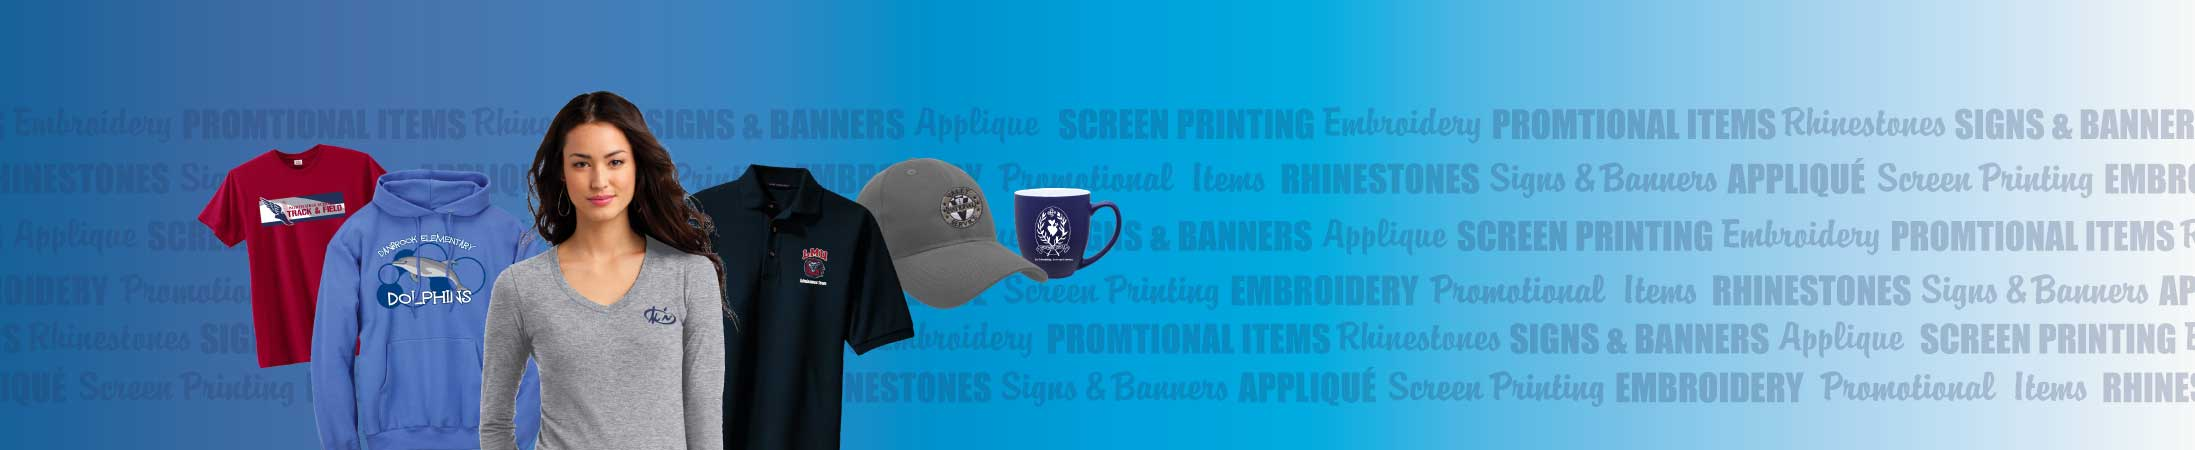 Kustom Imprints Screen Printing Embroidery